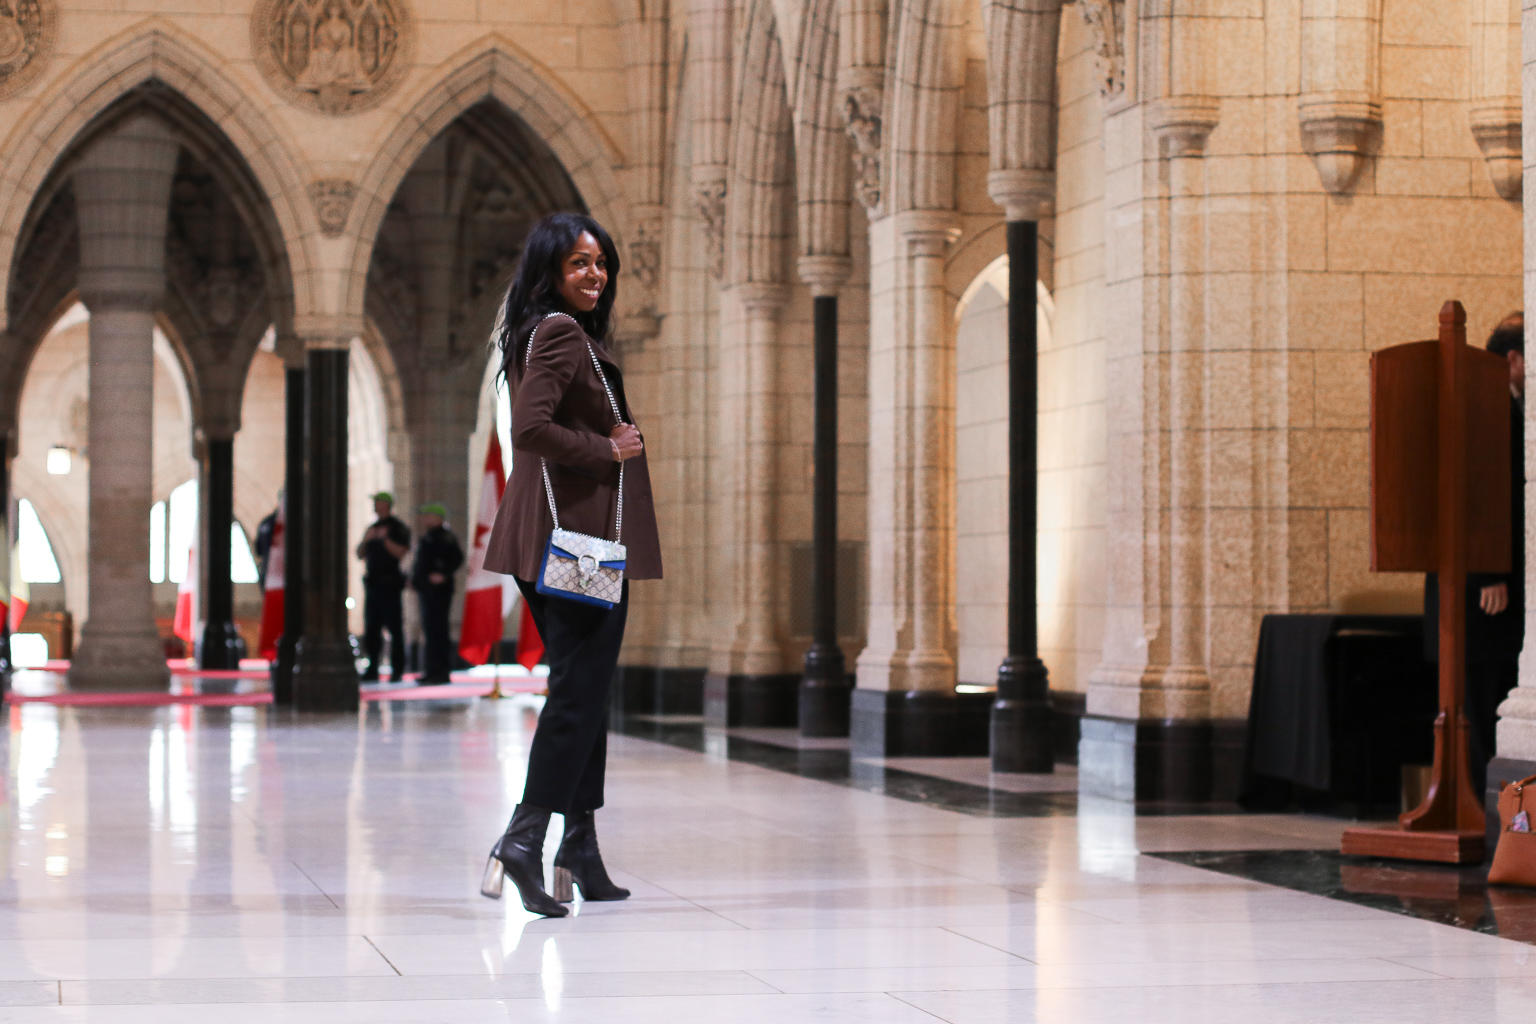 #Inspired: The Second Annual Youth Innovation Summit - British Council In Canada | Dominique Baker of Style Domination